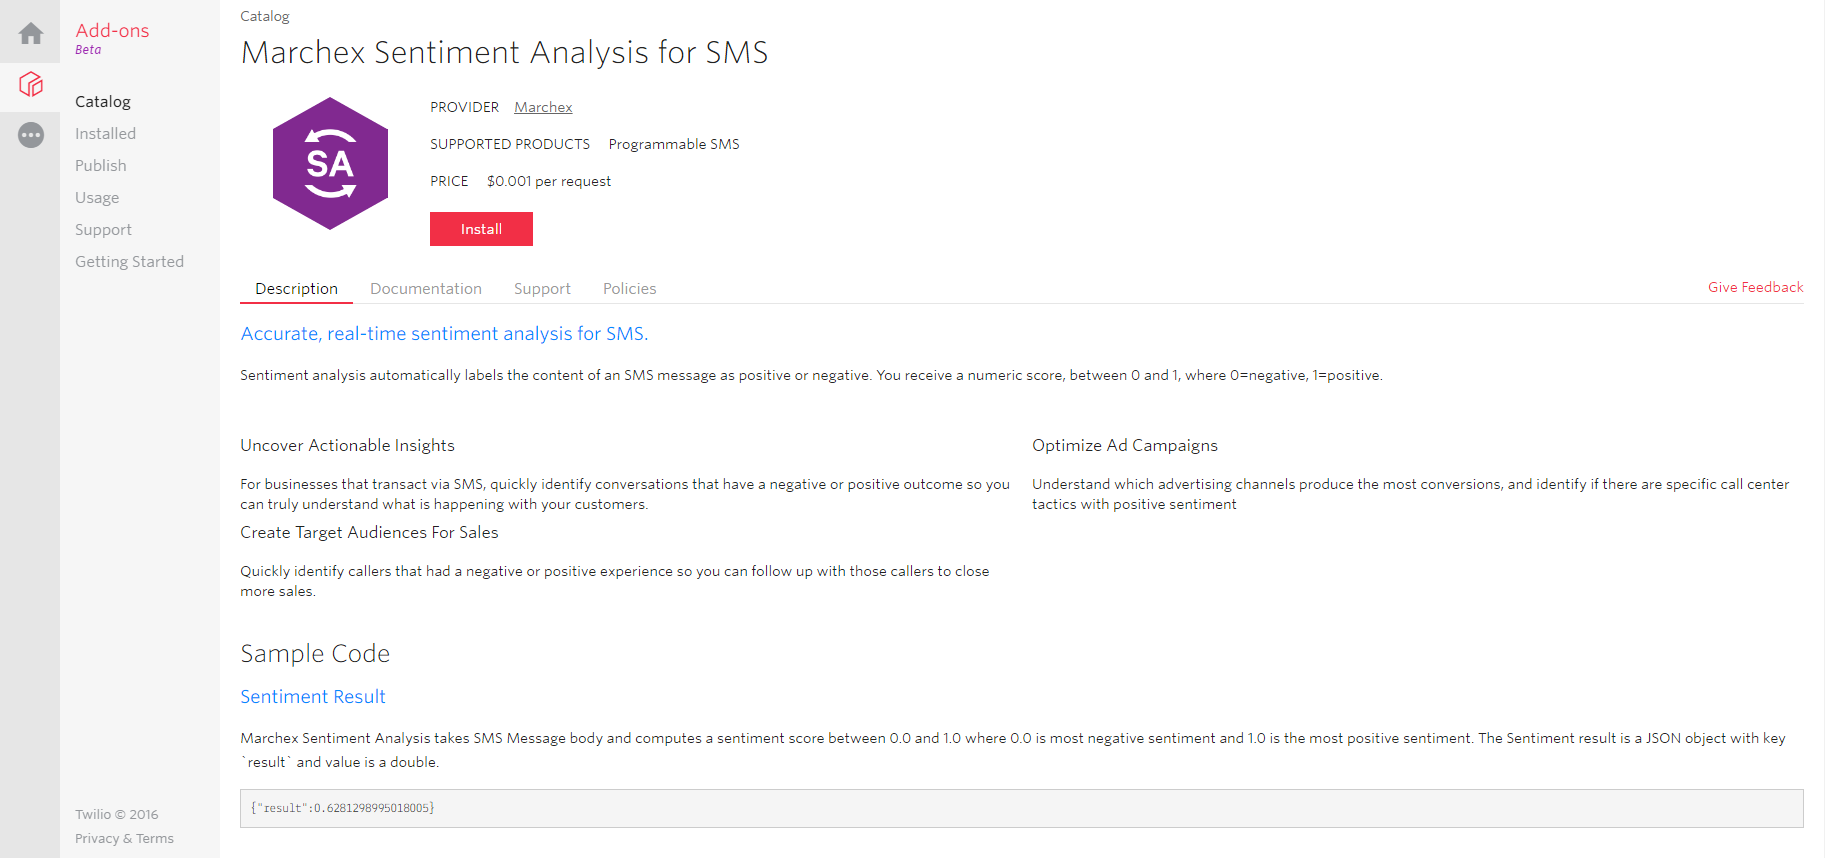 Marchex Sentiment Analysis add-on